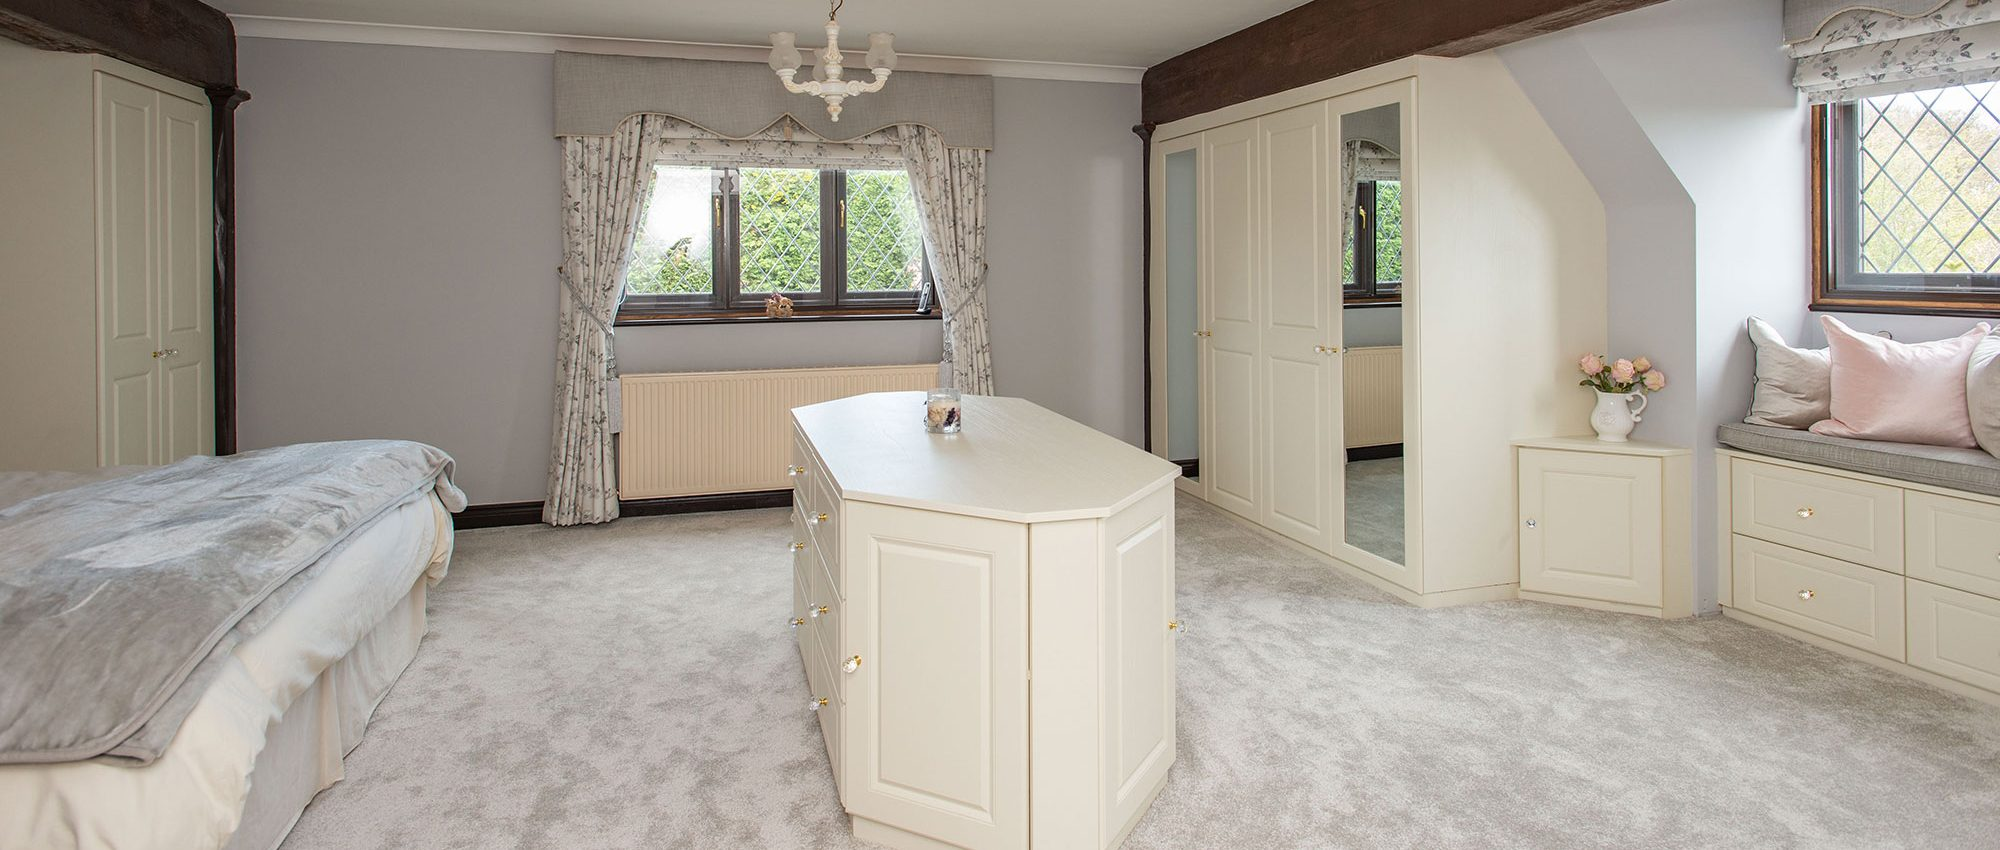 Bespoke Fitted Bedrooms Home Furniture In Kent Gpm Designs